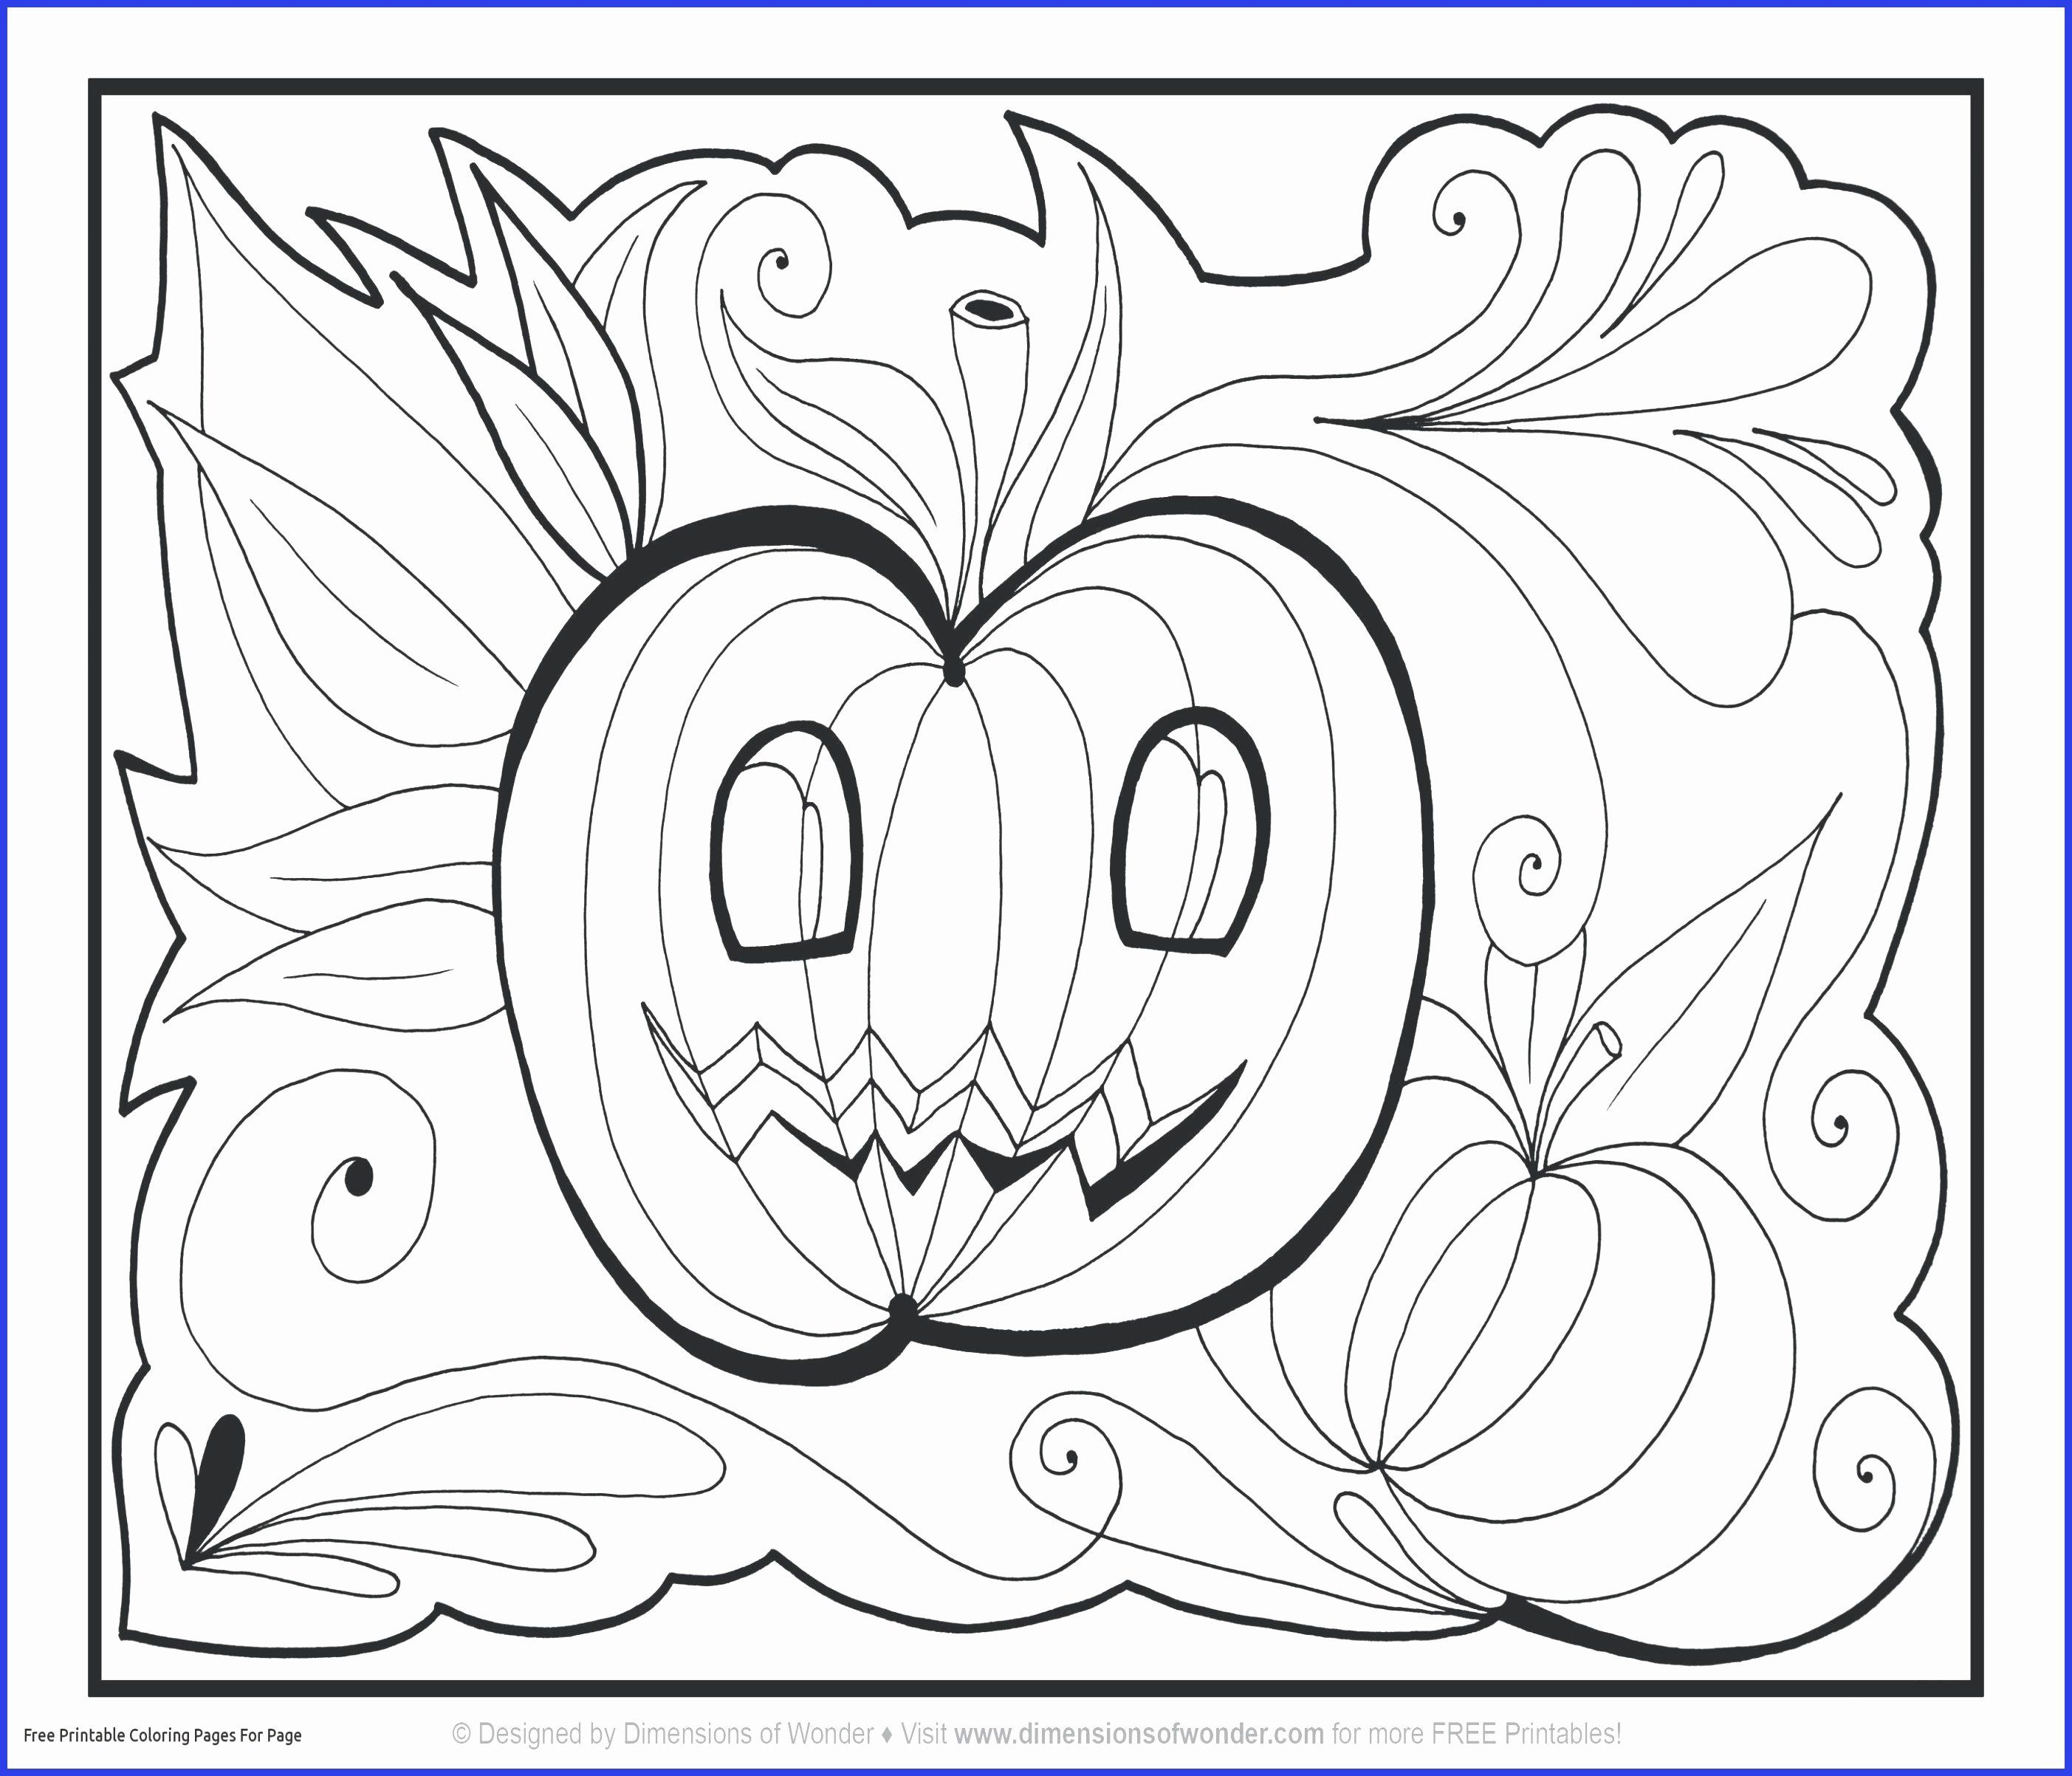 Black History Coloring Pages Pdf Inspirational Lovely Black And White Halloween Coloring Sheets Kursknews Mardi Gras Template Art